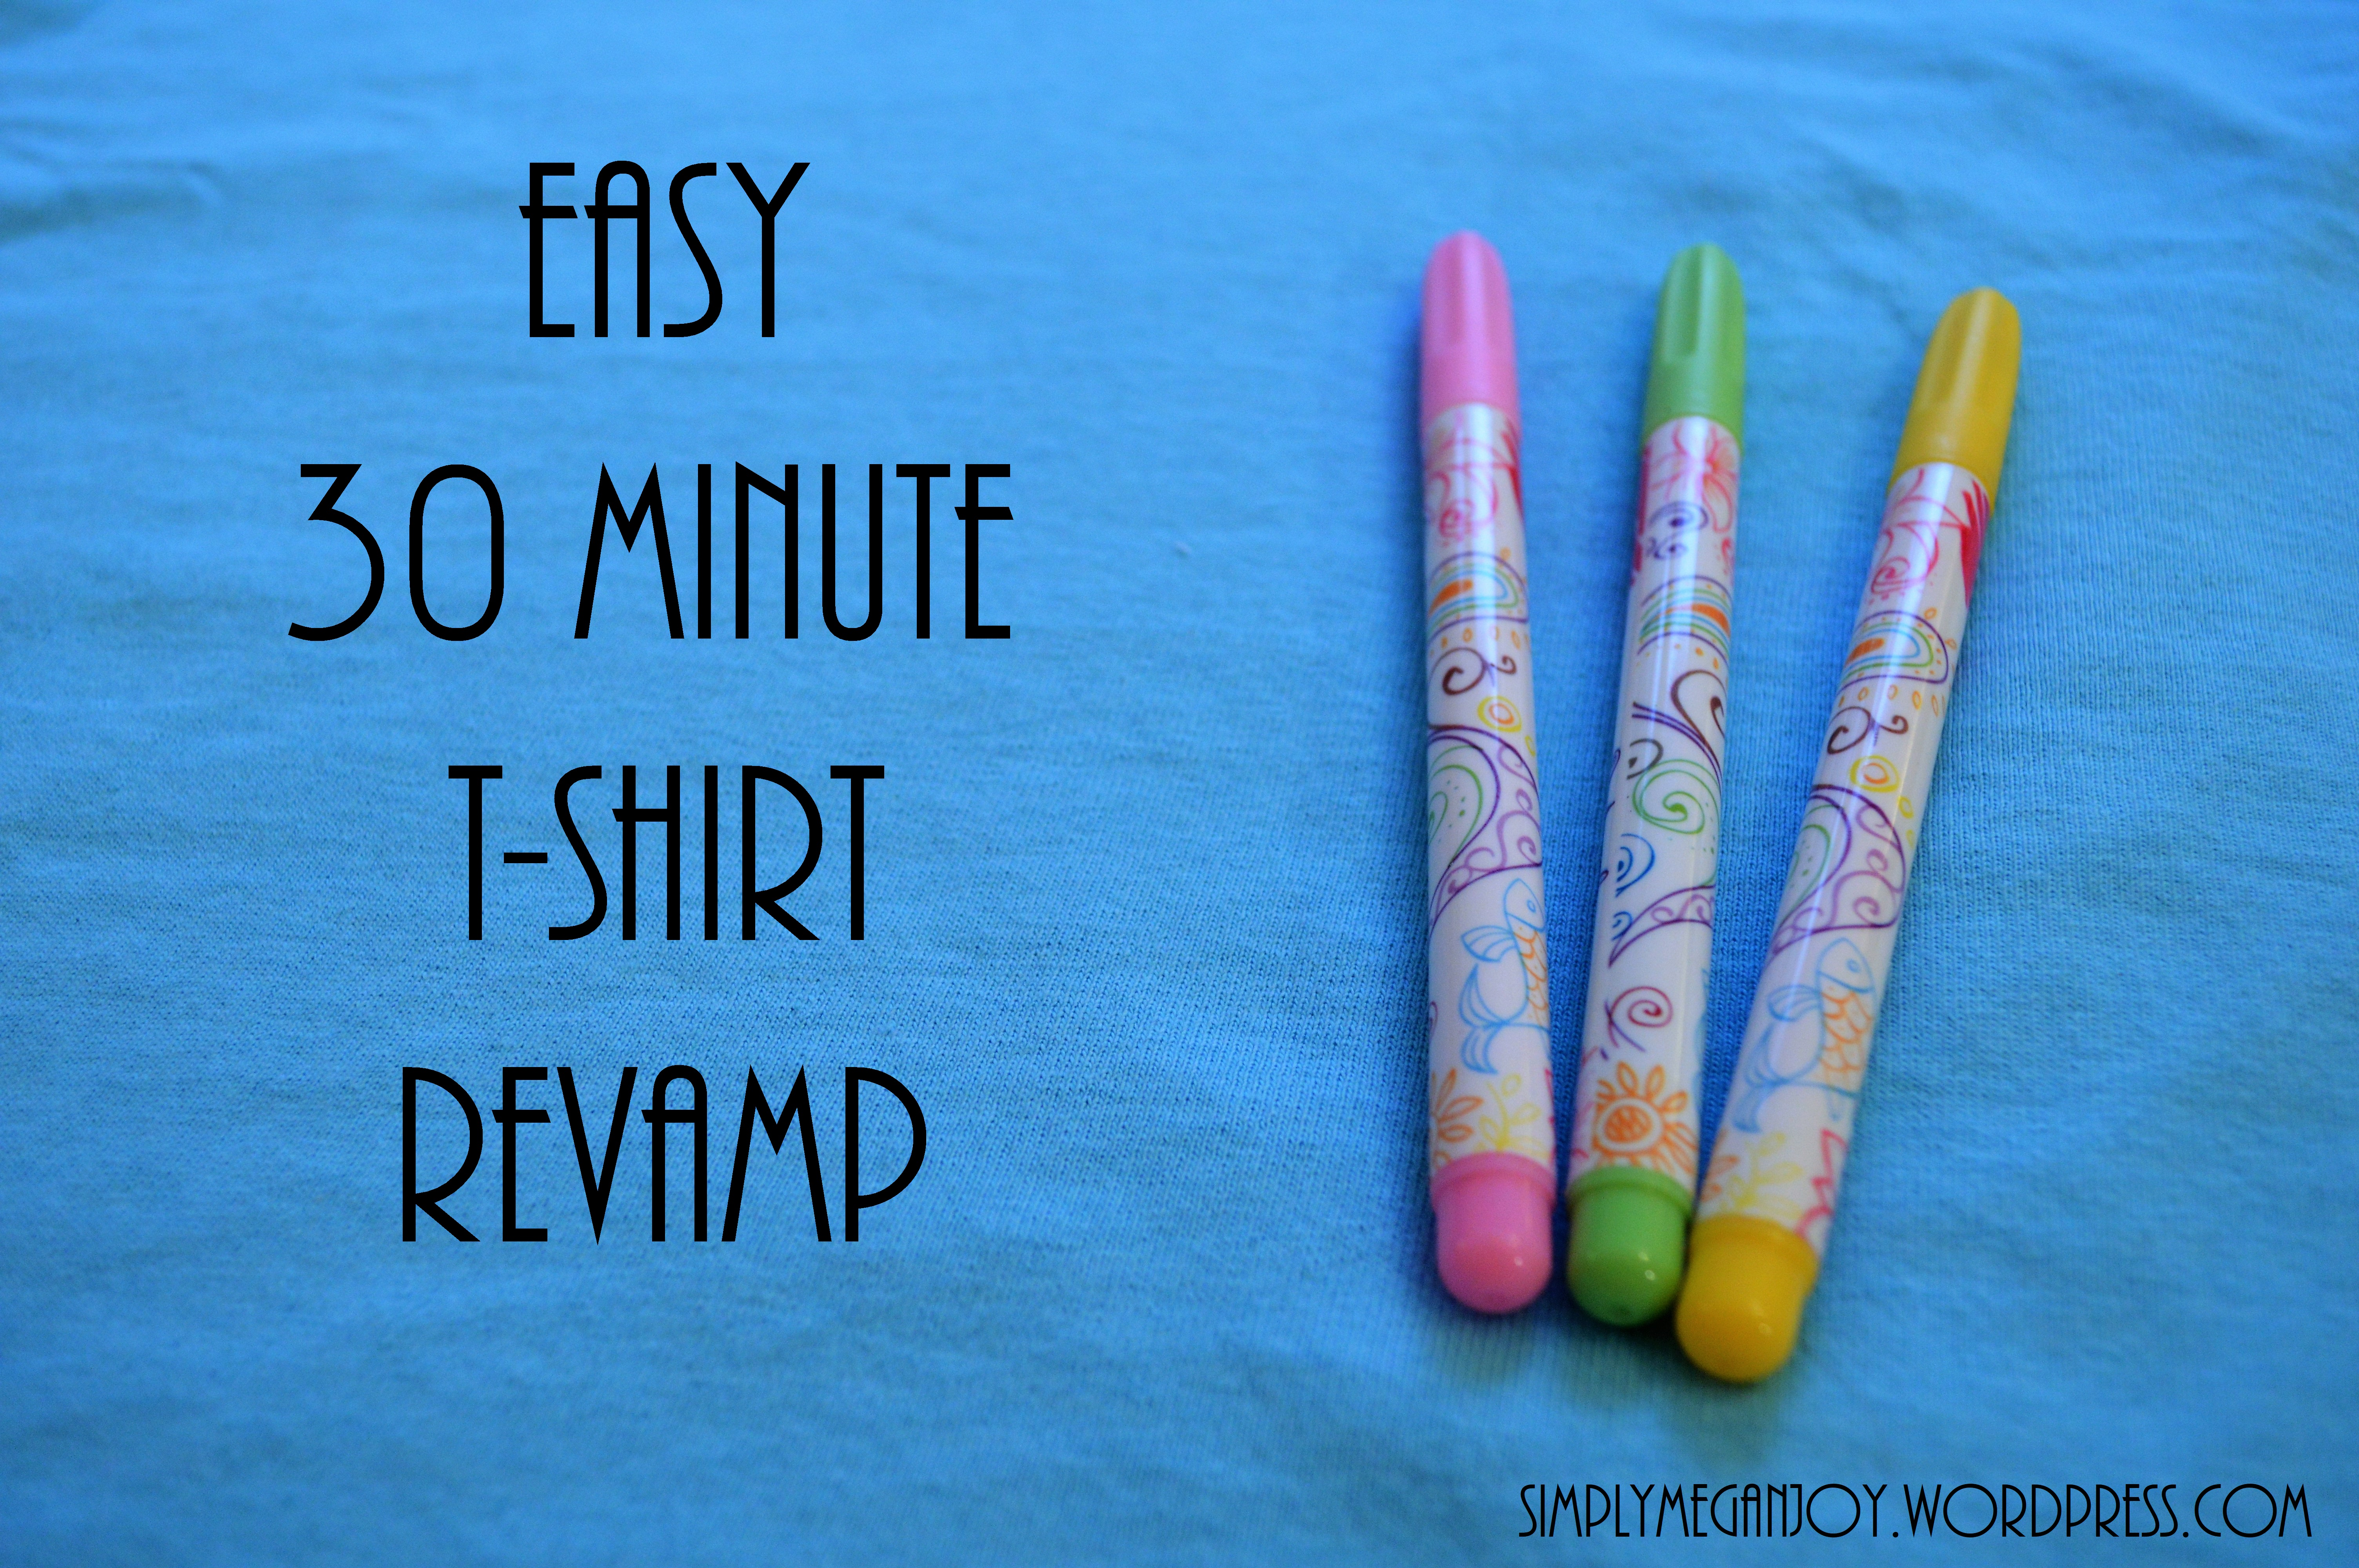 Easy 30 Minute T-Shirt Re-vamp - simplymeganjoy.wordpress.com 2